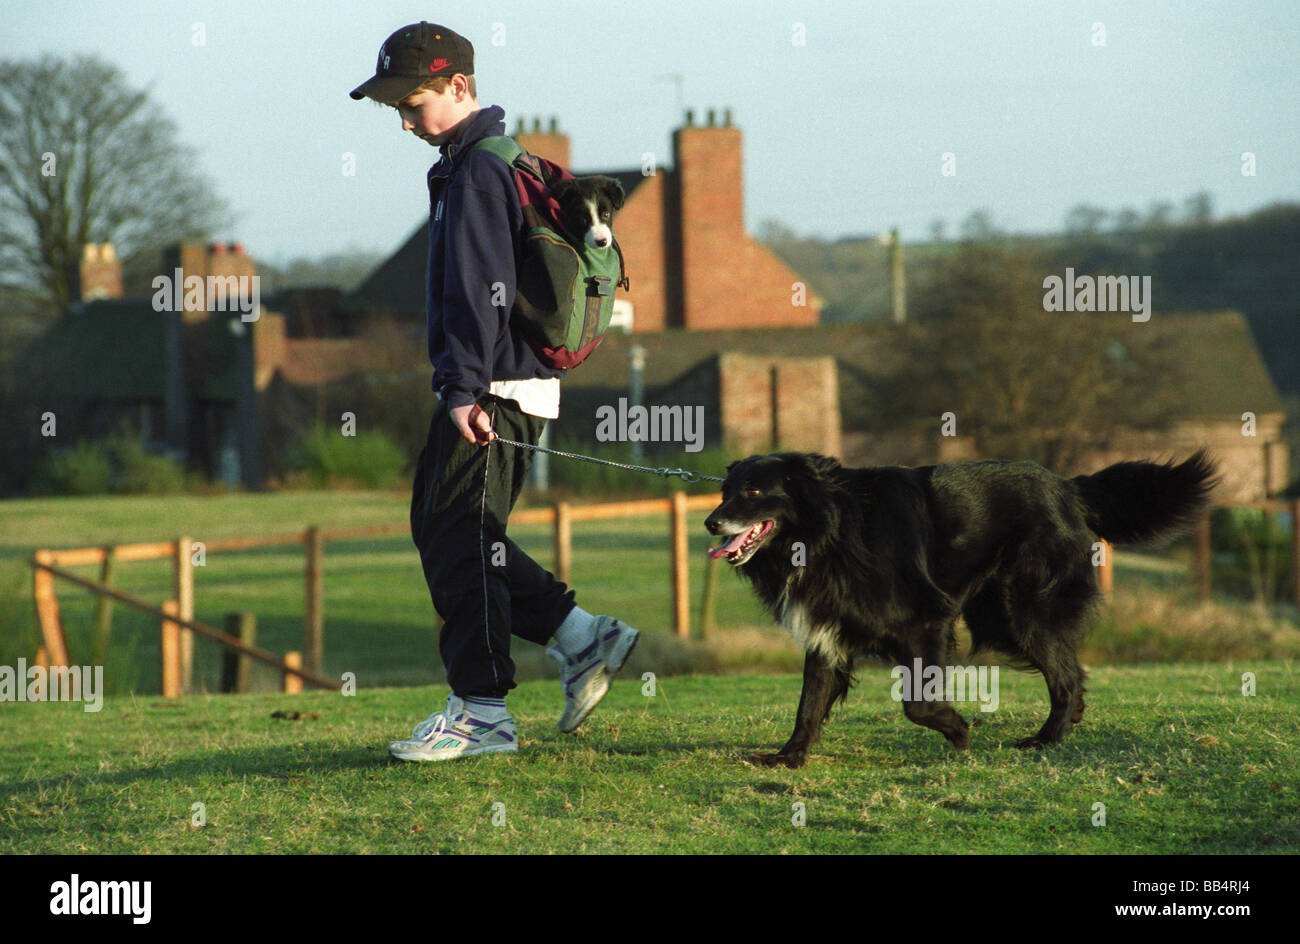 Border Collie puppy carried in a ruck sack by young boy uk - Stock Image